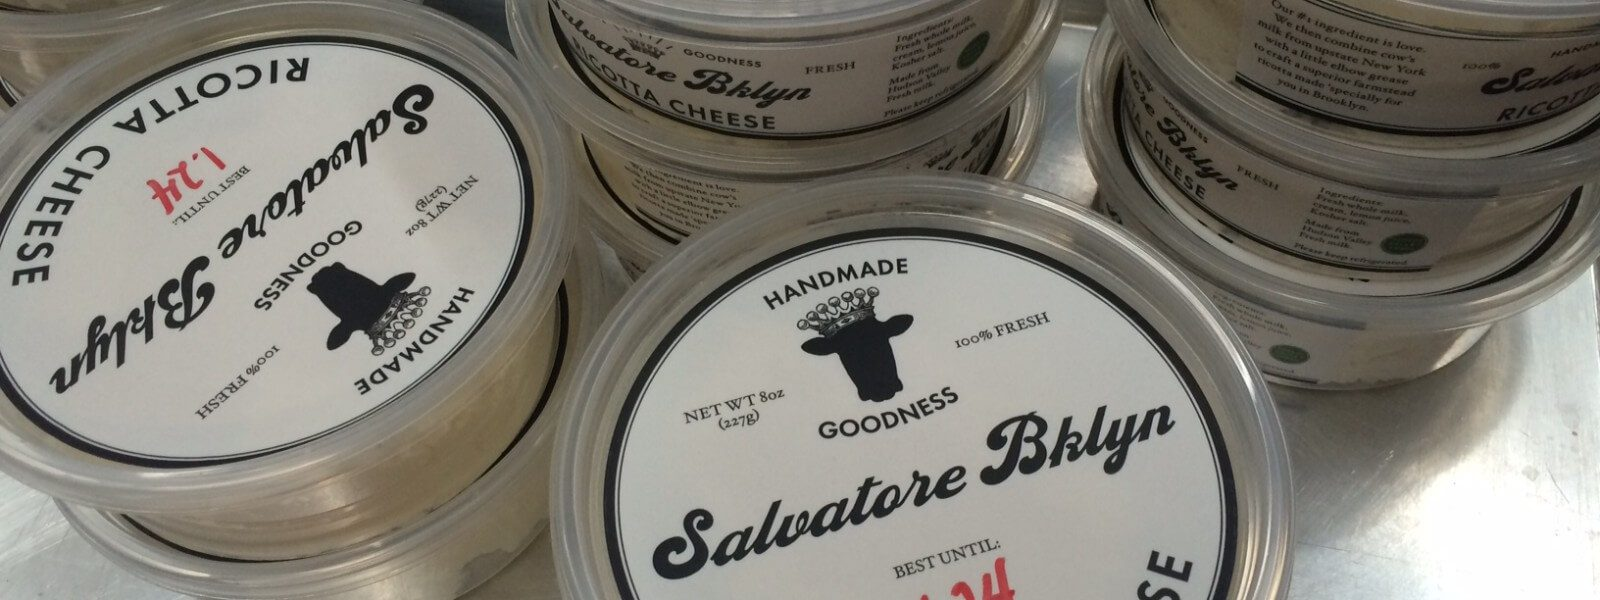 Containers of Salvatore Brooklyn ricotta.